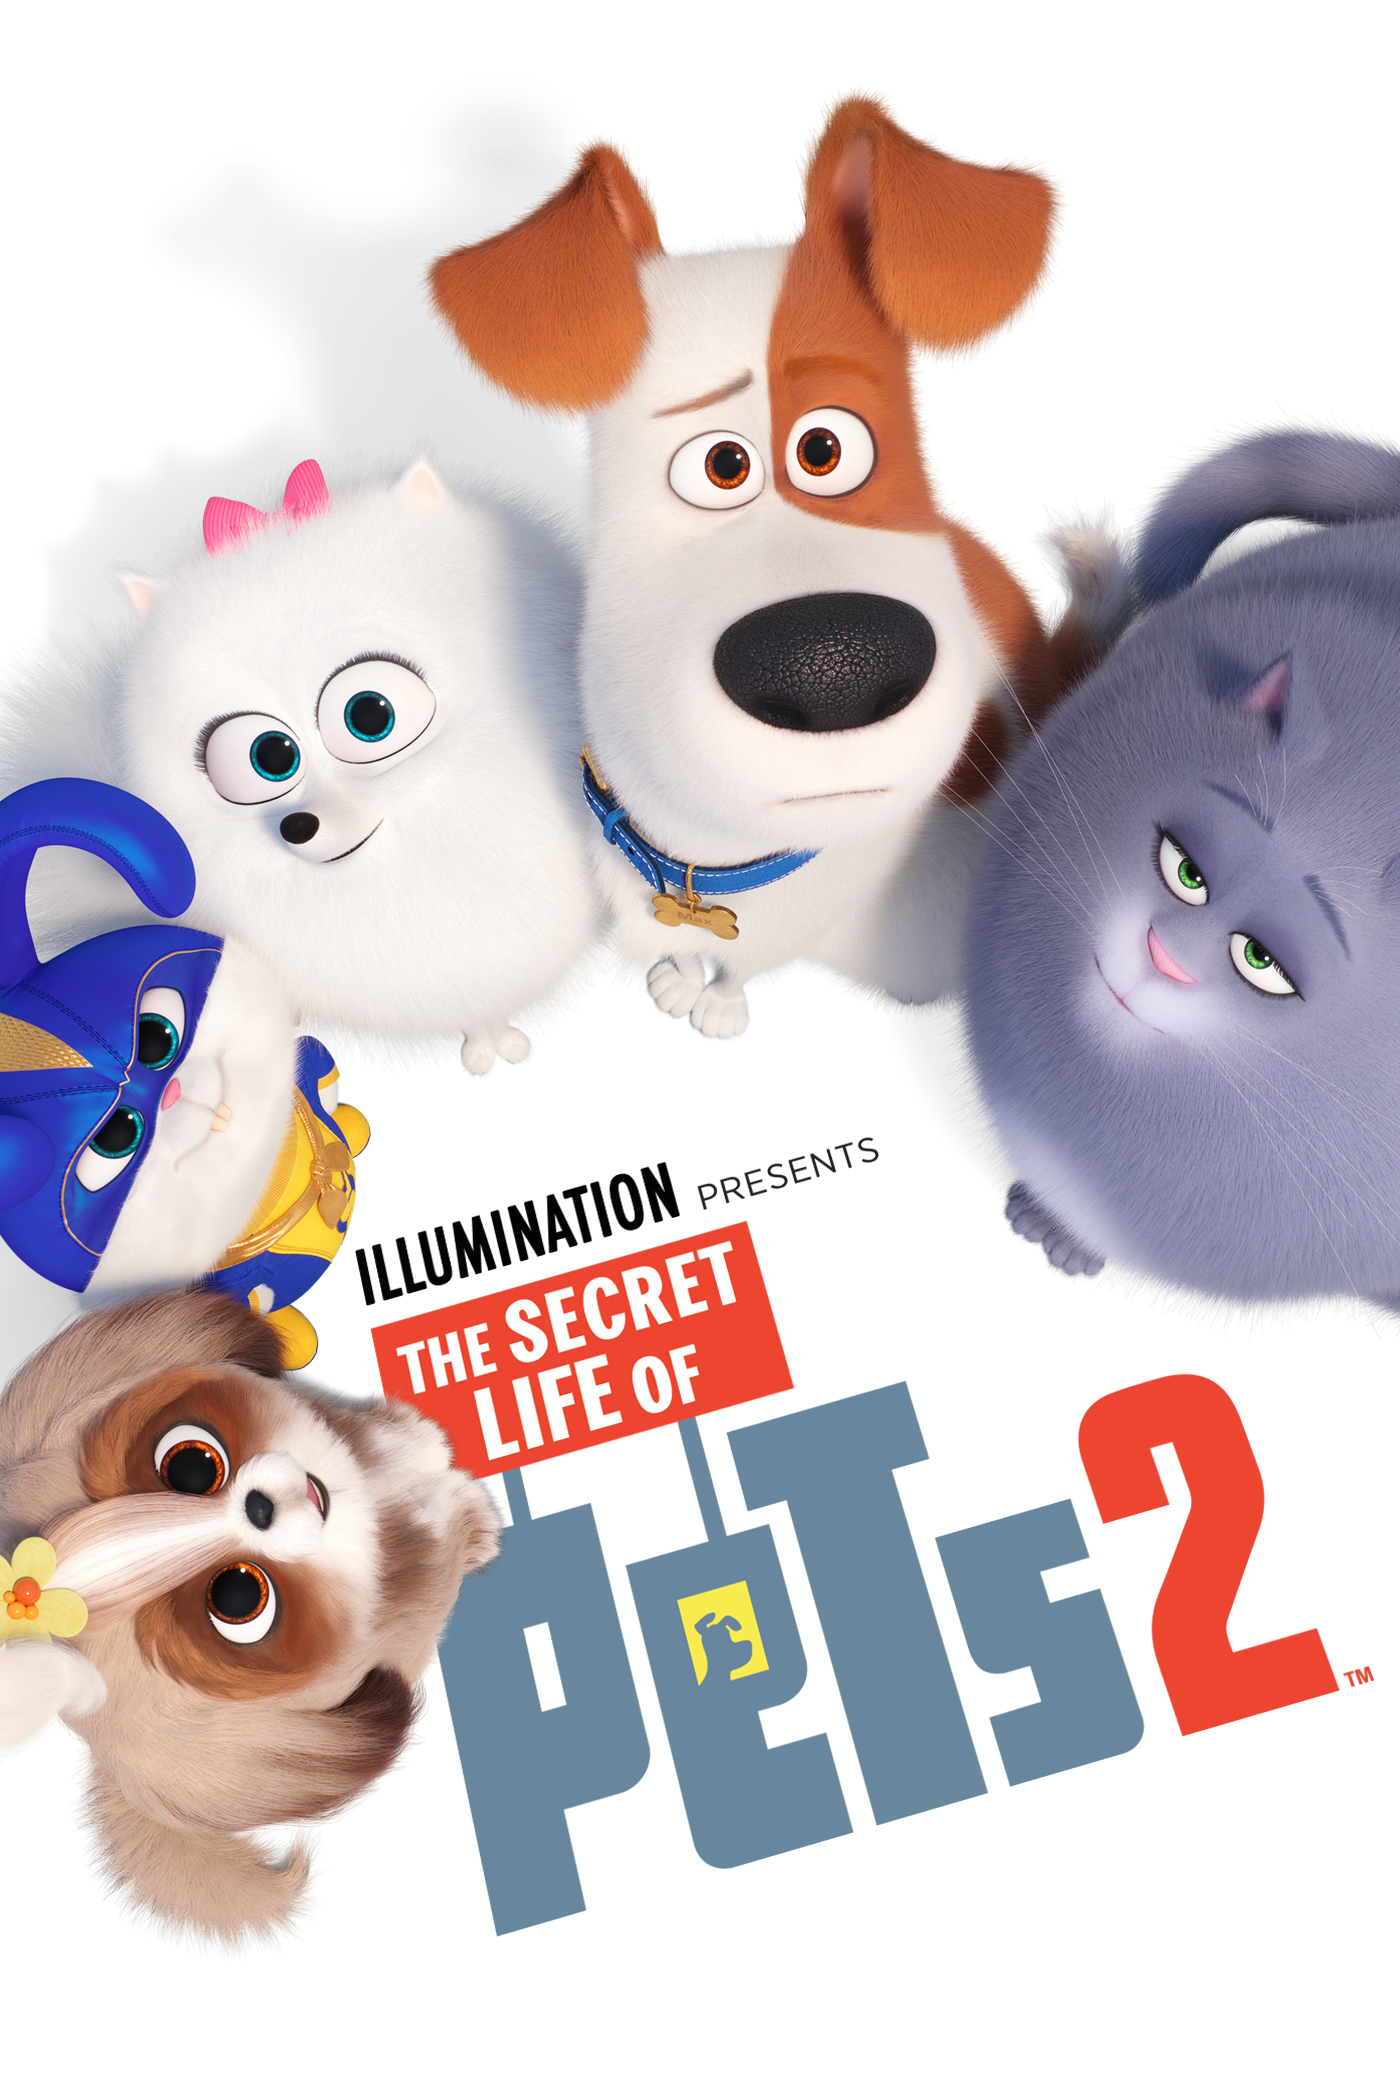 The Secret Life of Pets 2 | Buy, Rent or Watch on FandangoNOW